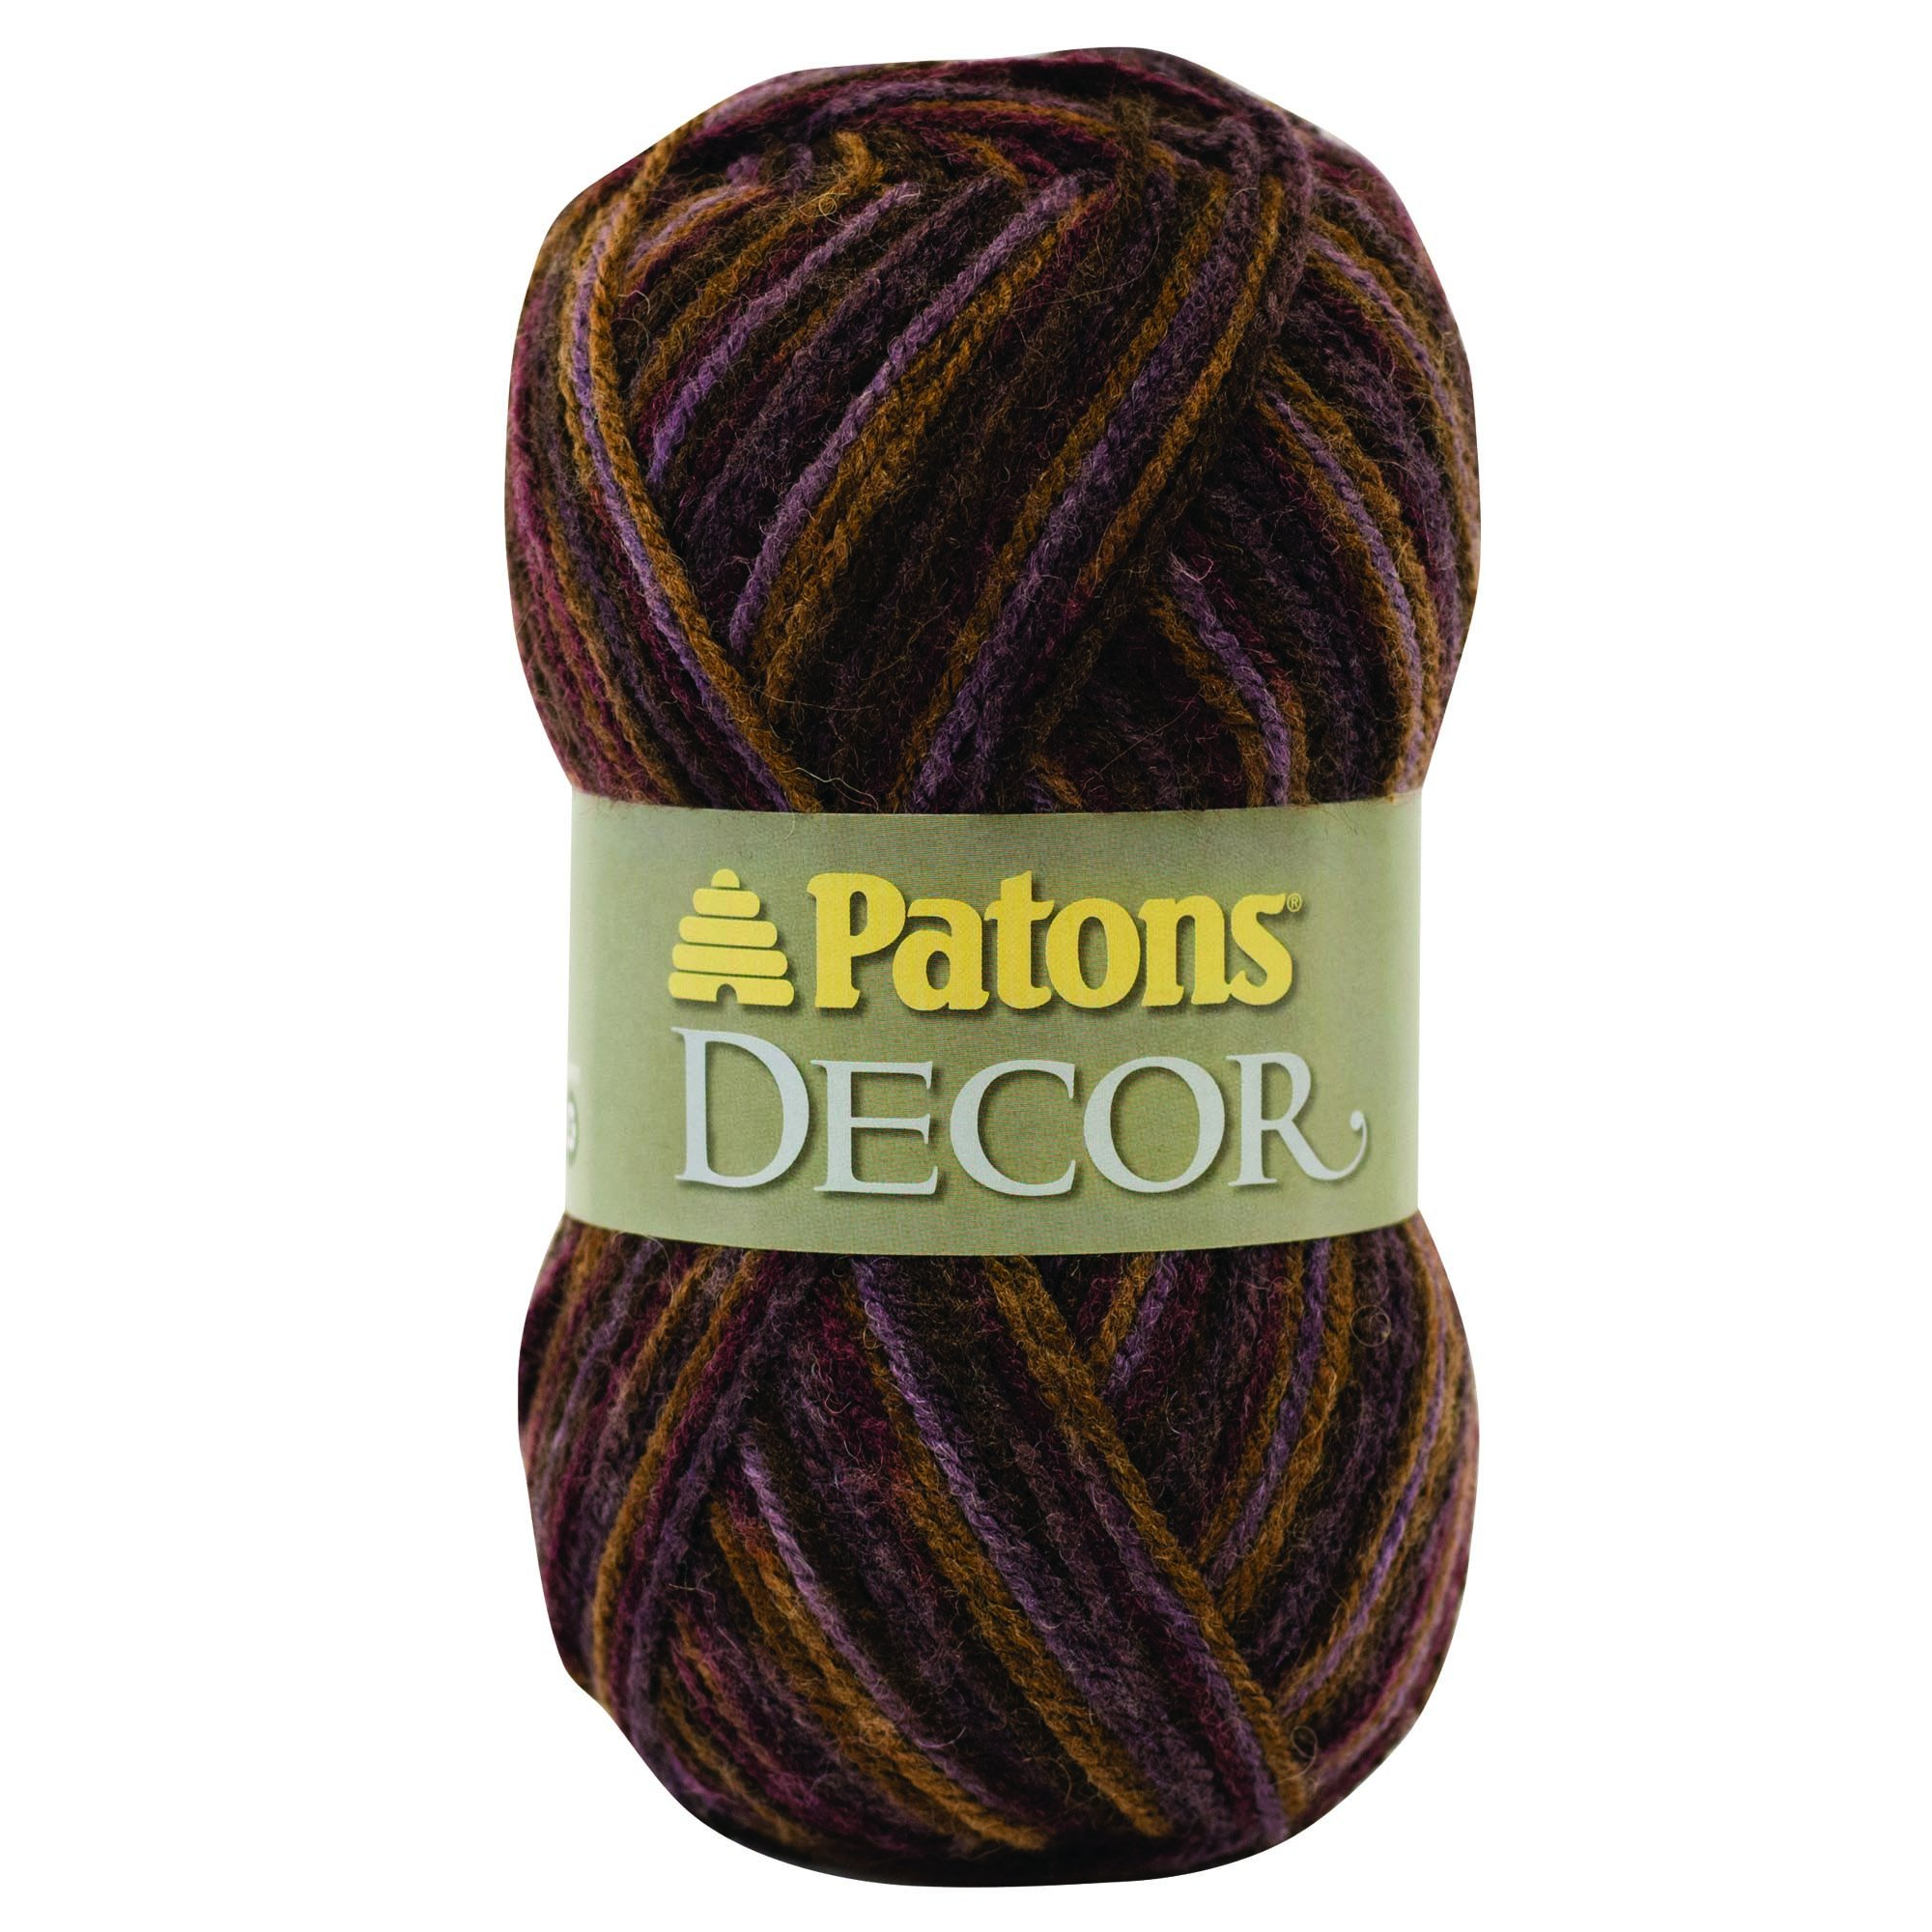 Patons  Decor Yarn - (4) Medium Worsted Gauge  - 3.5oz -  Tapestry  -   For Crochet, Knitting & Crafting